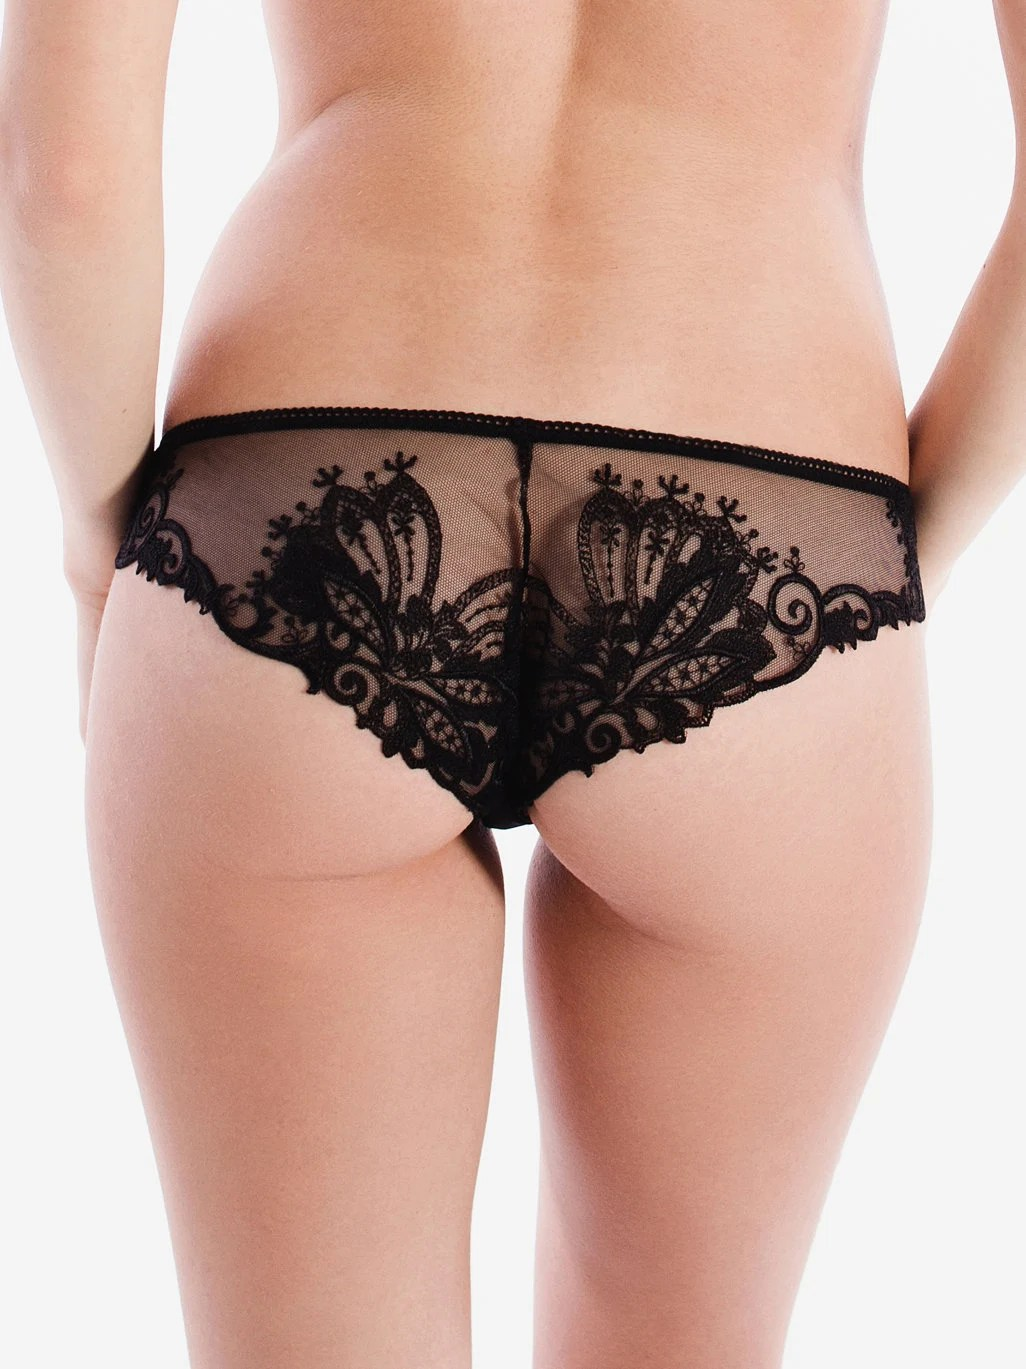 Women In Panties Pics : women, panties, Black, Panties, Women, Cheeky